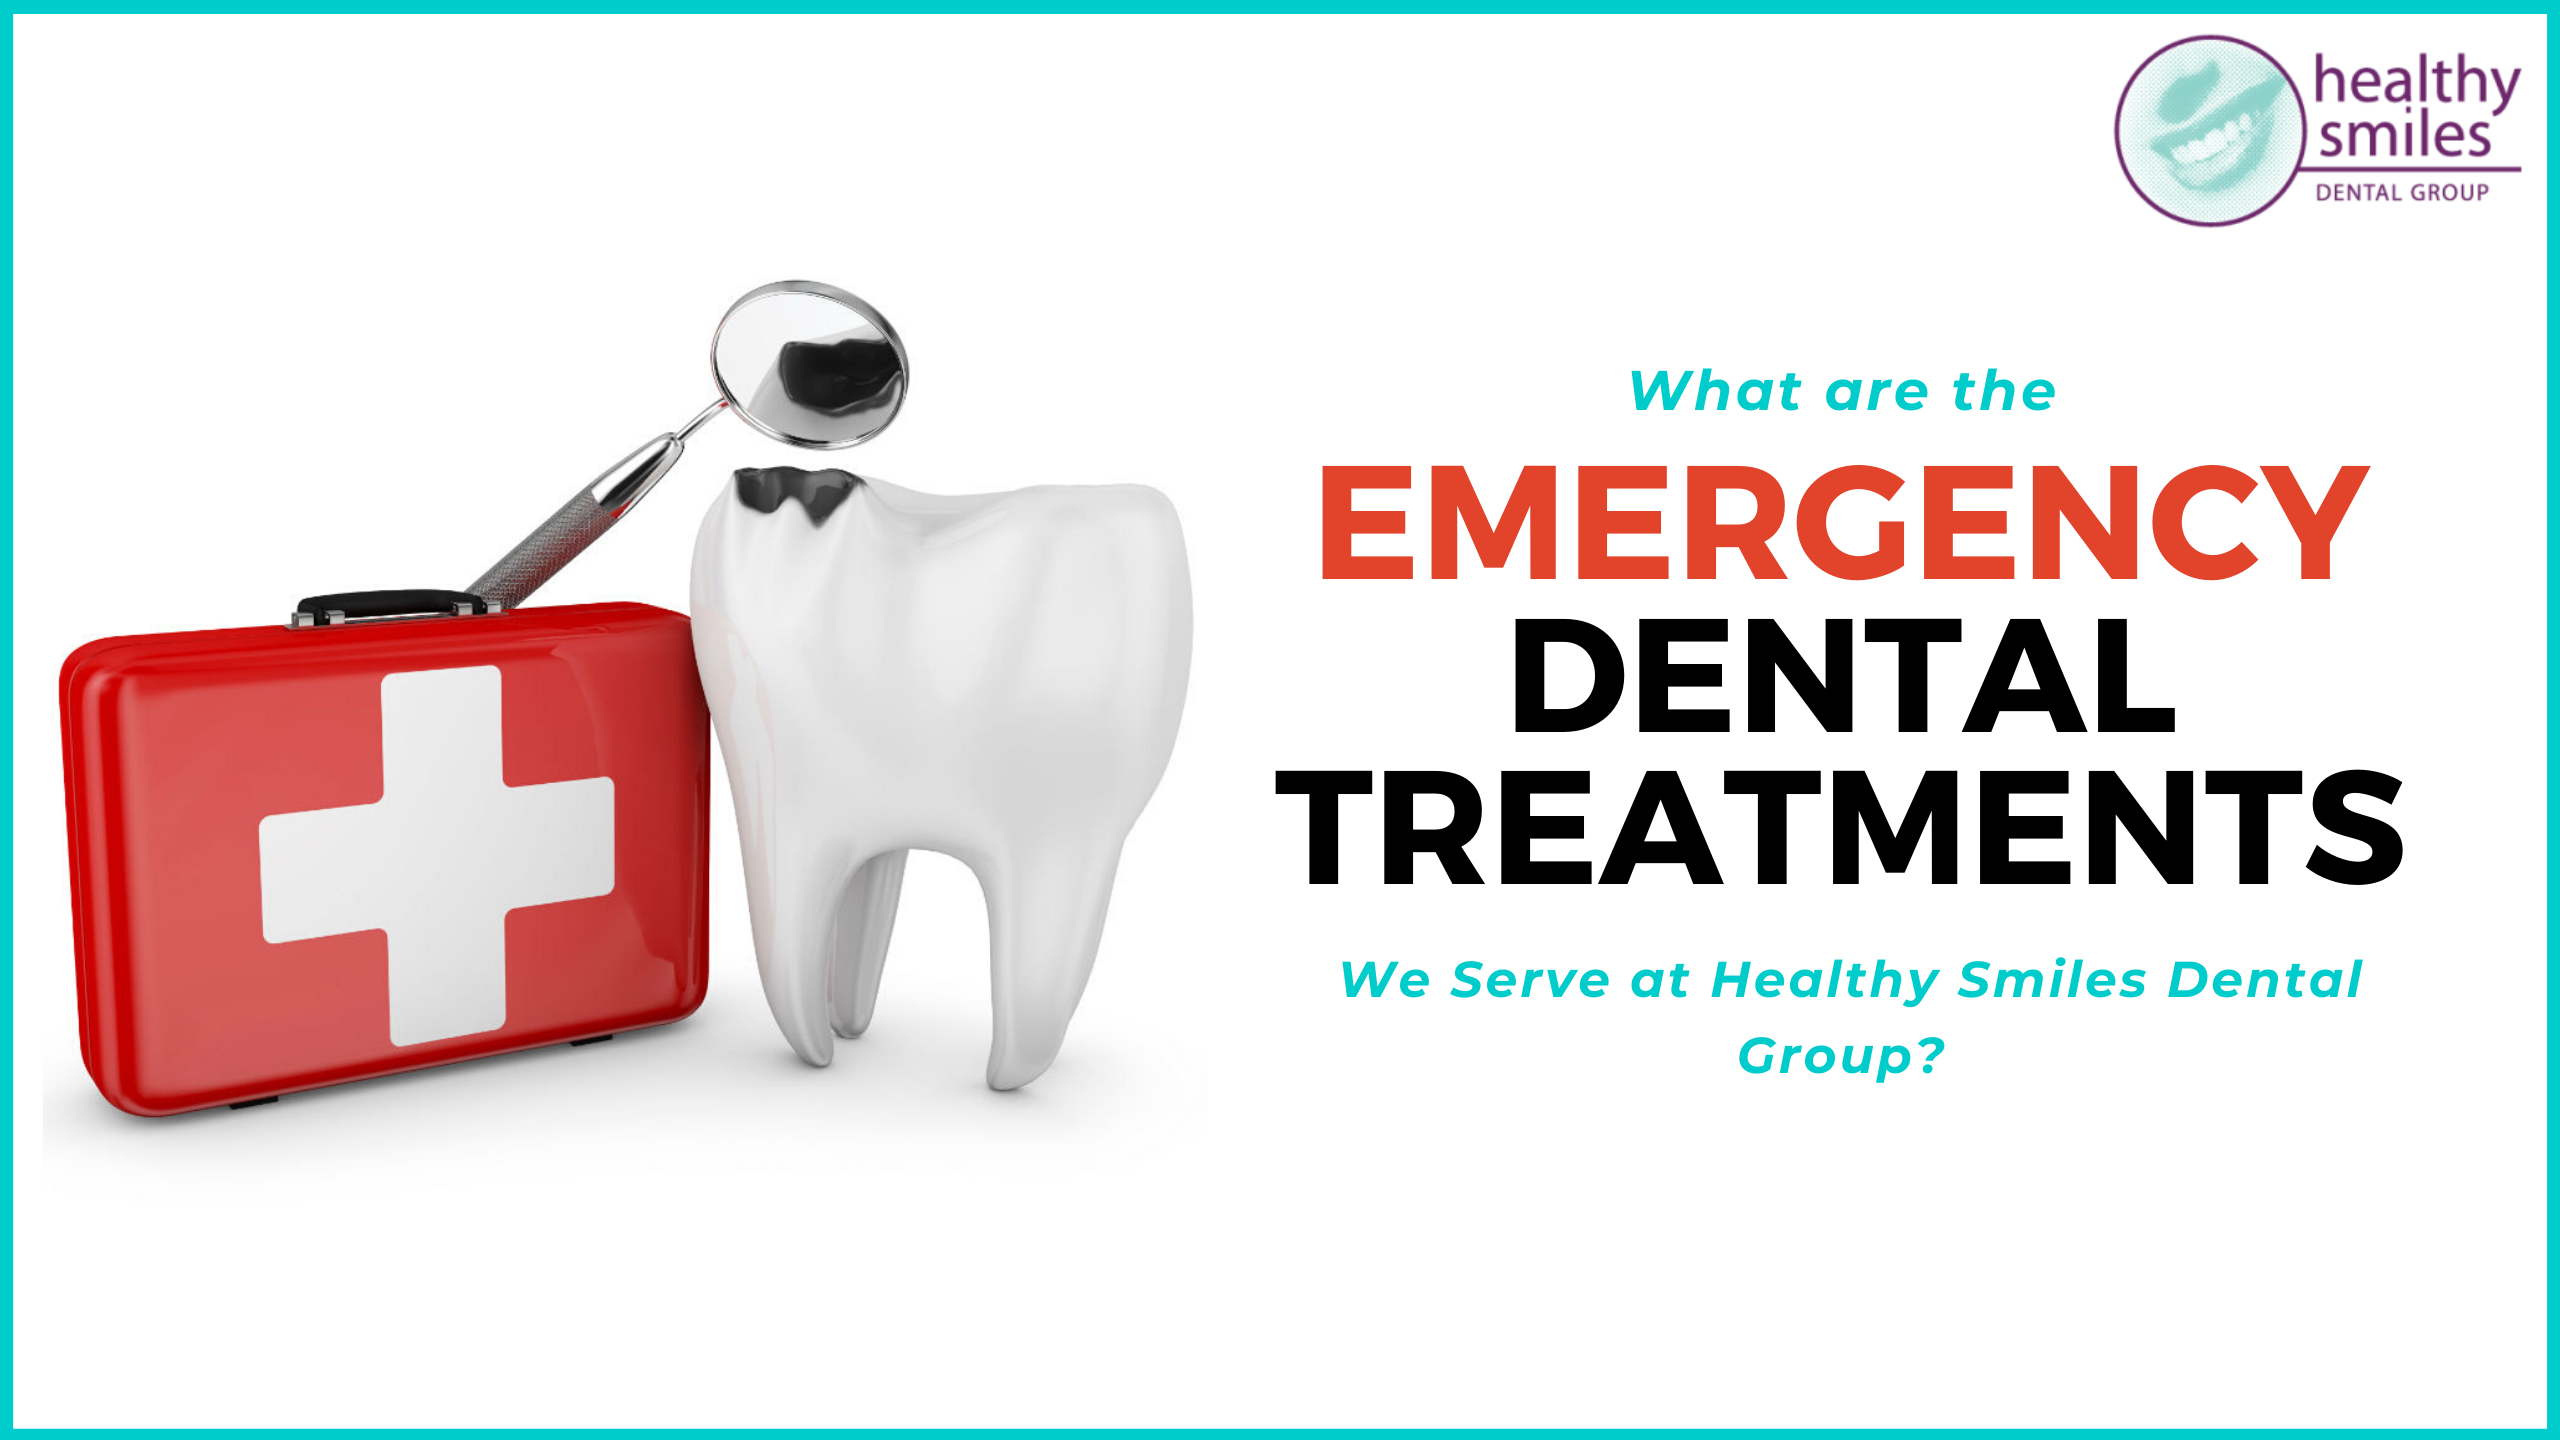 Emergency dental treatments